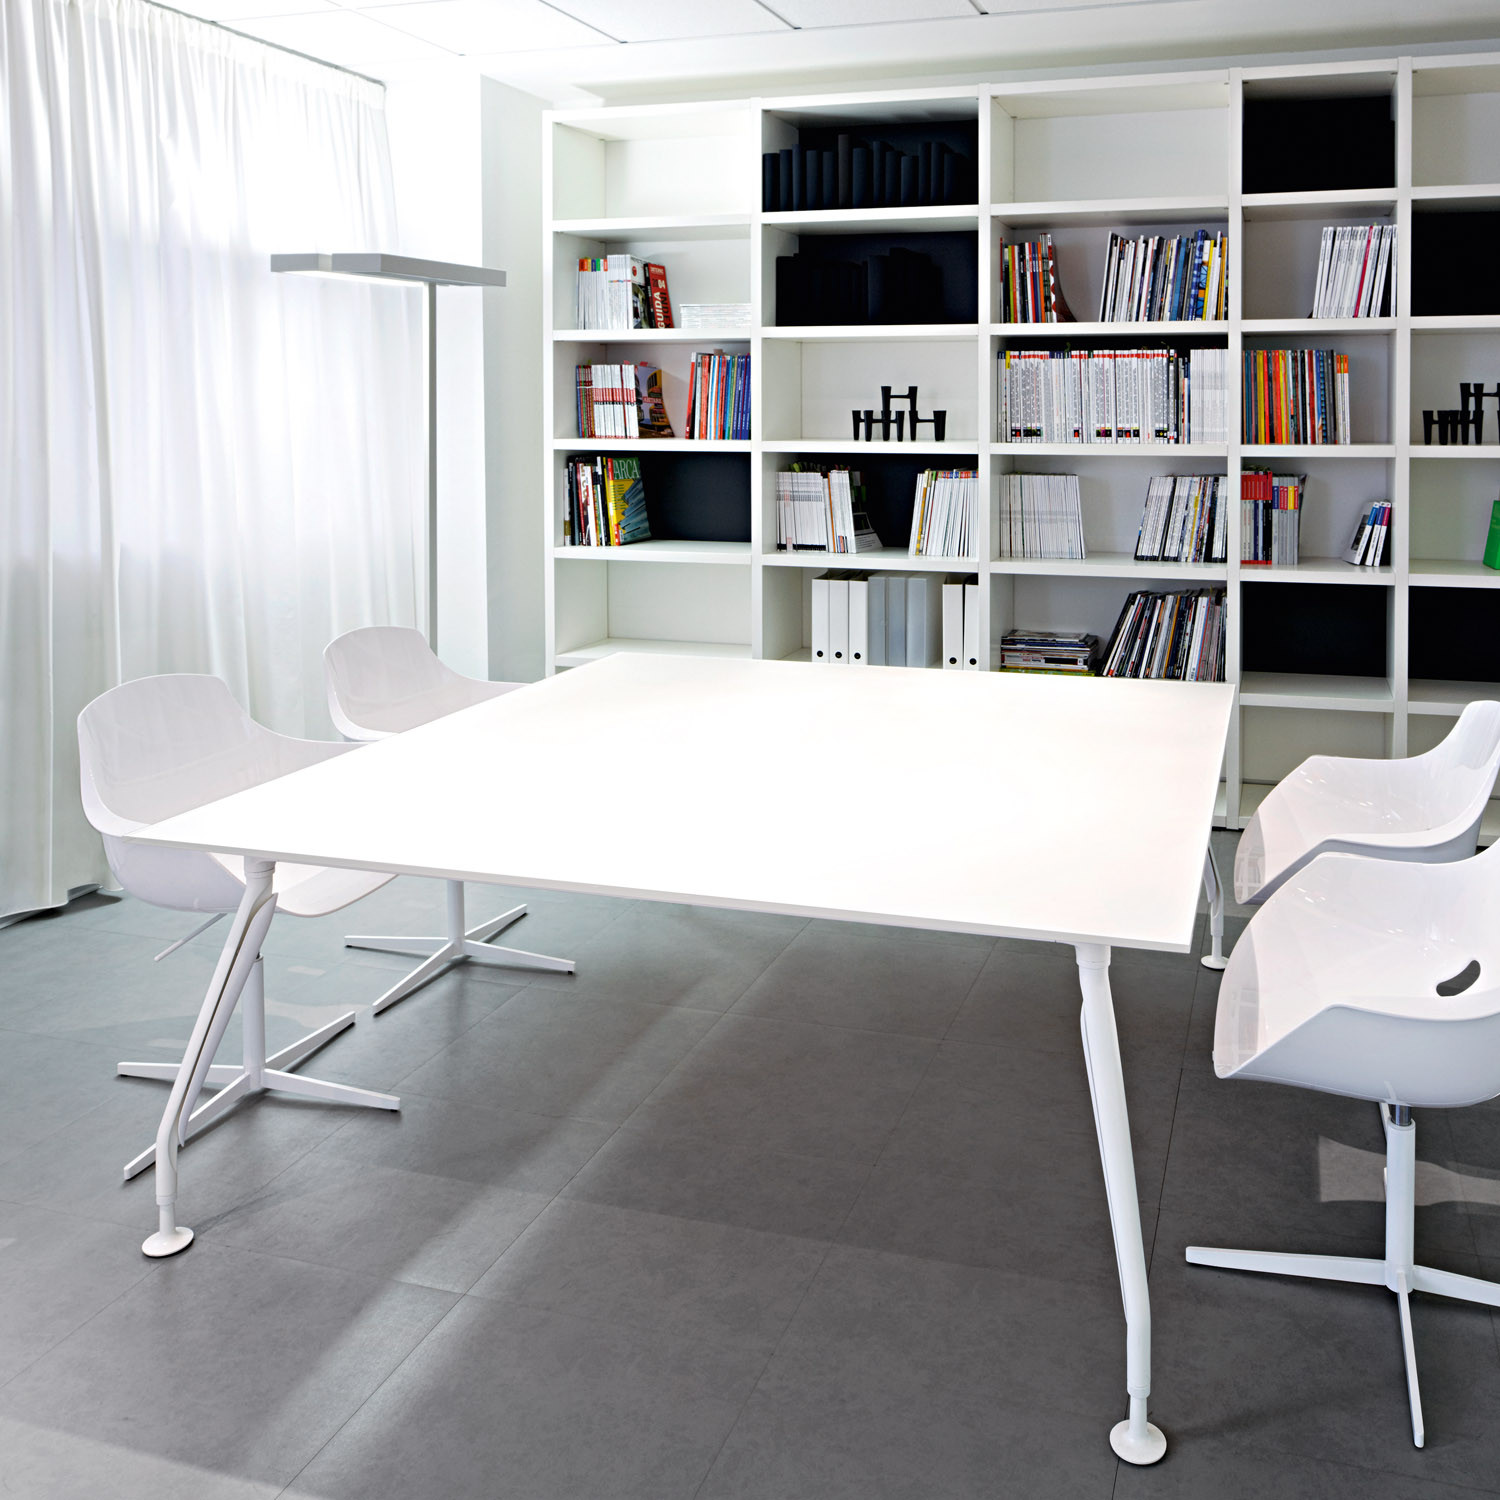 Glamour Meeting Tables Sinetica Conference Tables Apres Furniture - Conference table with storage